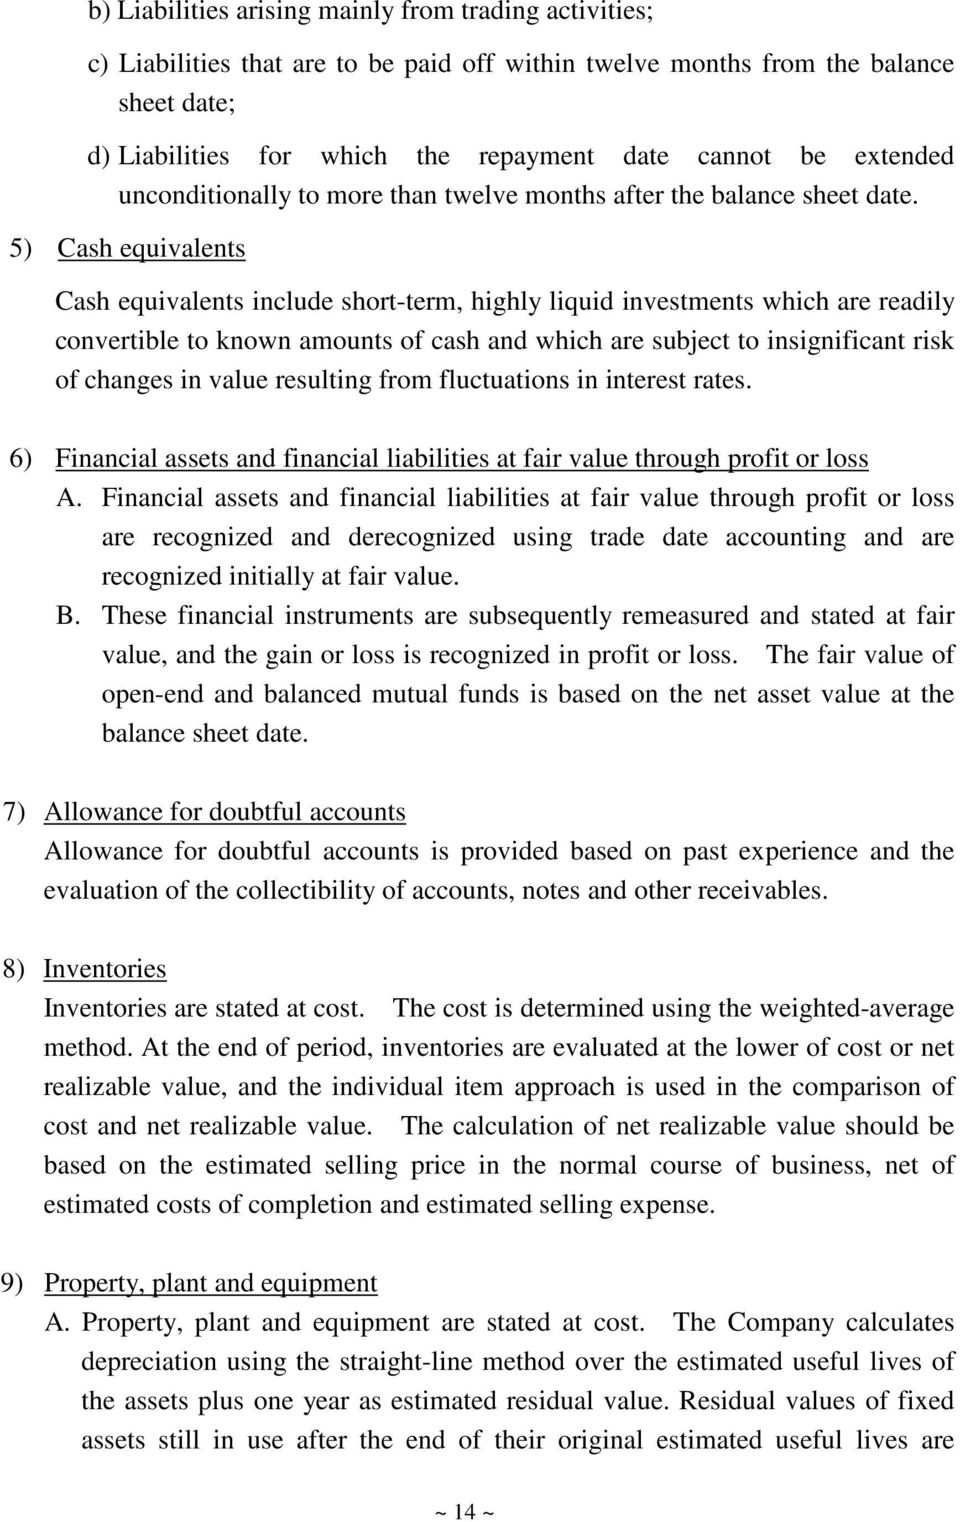 5) Cash equivalents Cash equivalents include short-term, highly liquid investments which are readily convertible to known amounts of cash and which are subject to insignificant risk of changes in